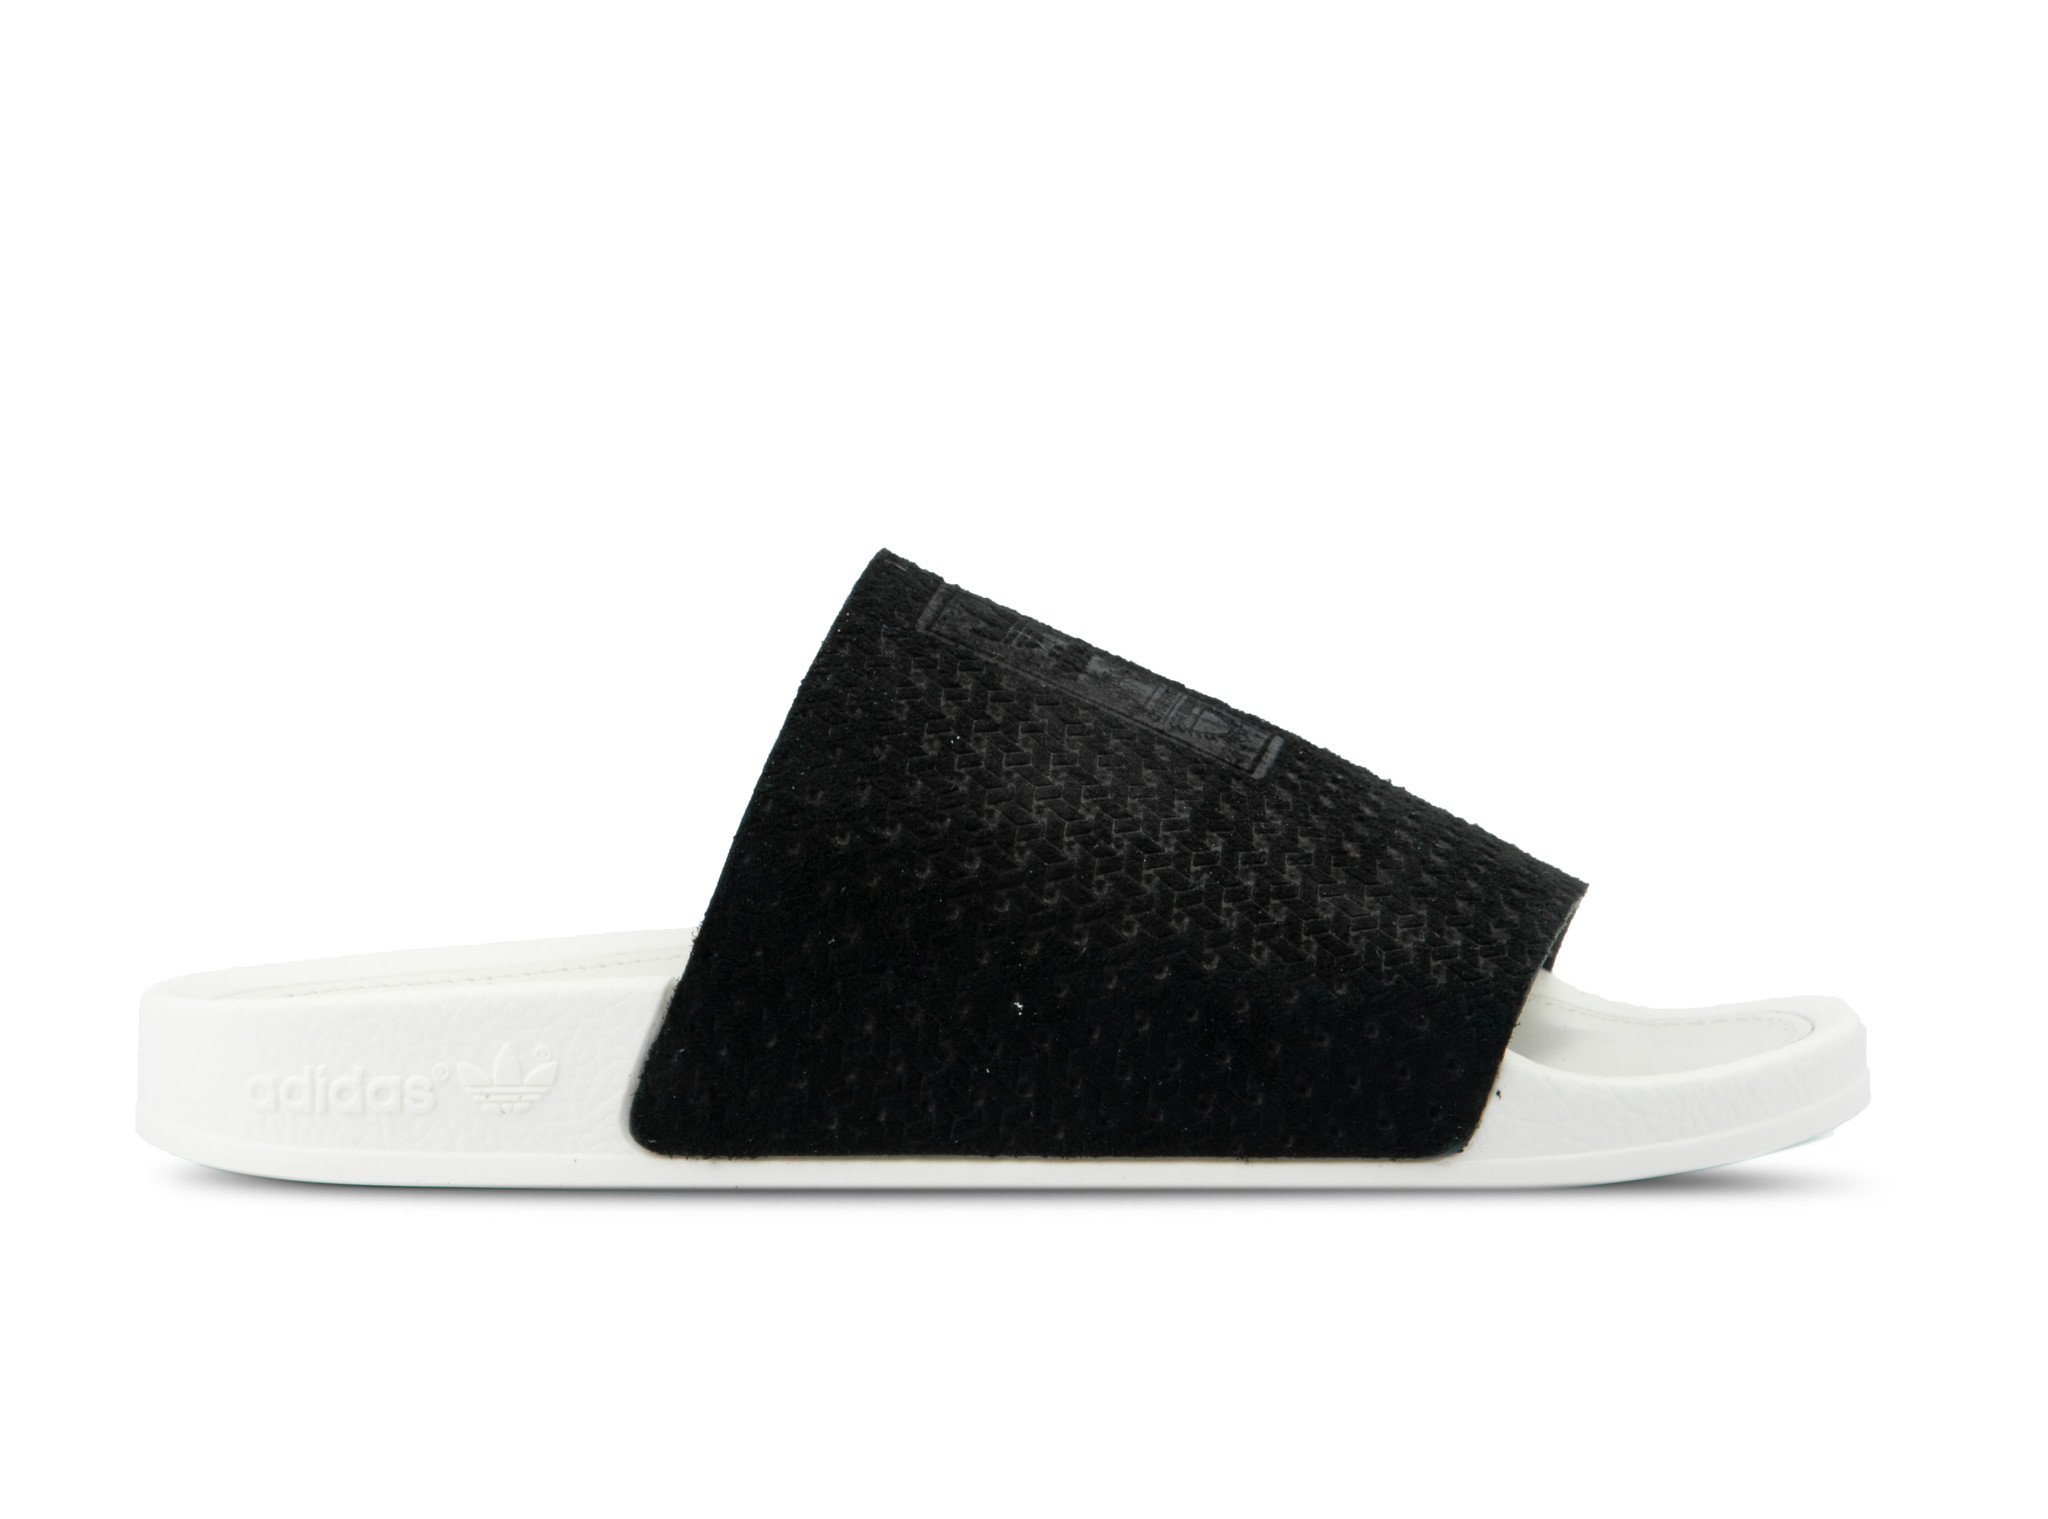 73e013bf7 Adilette Luxe W Core Black Core Black Off White CG6554 will be added to  your shopping card